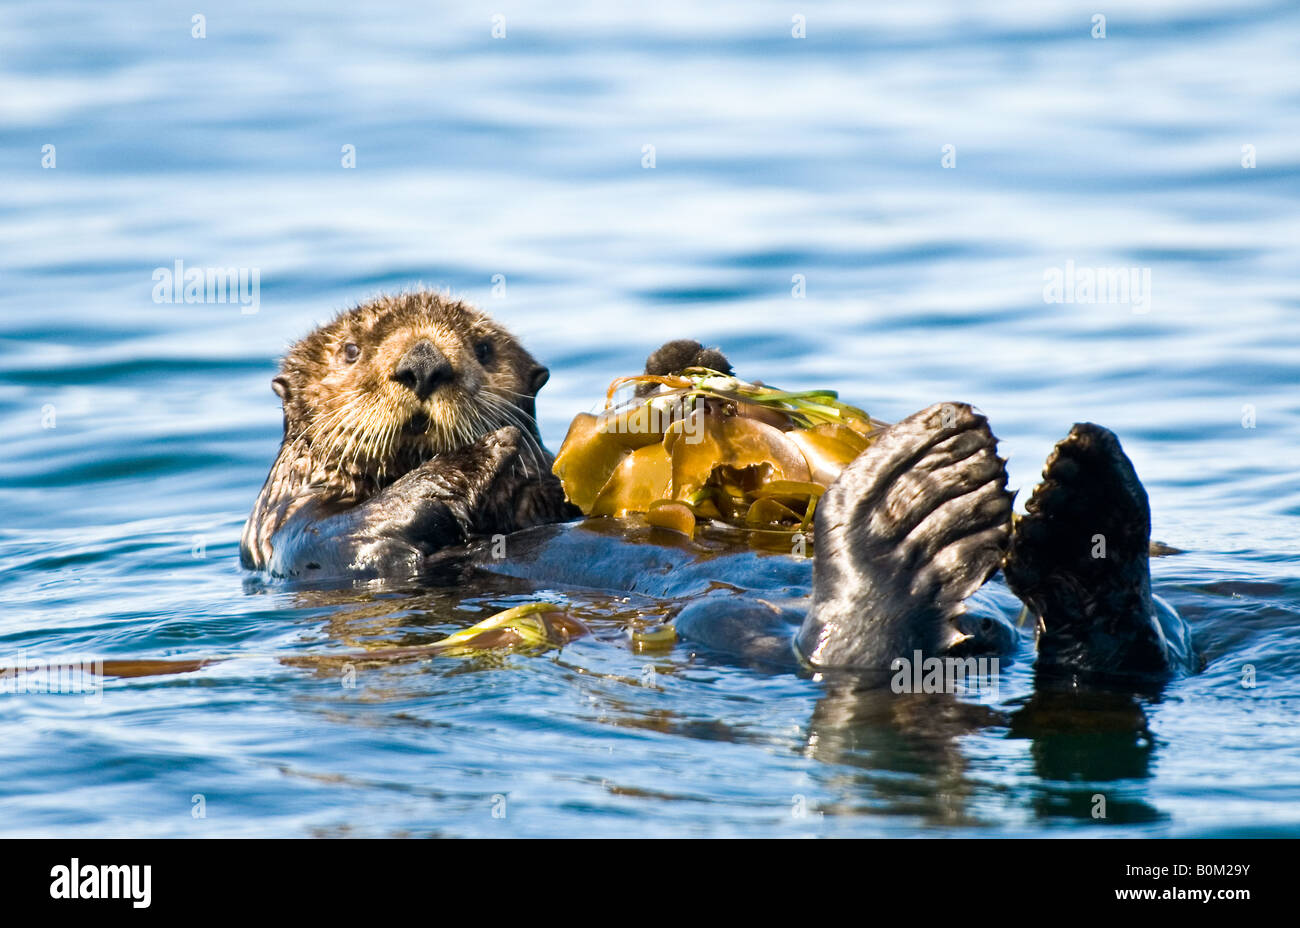 USA Alaska Sea Otter reposant sur lit de varech dans ocean Photo Stock